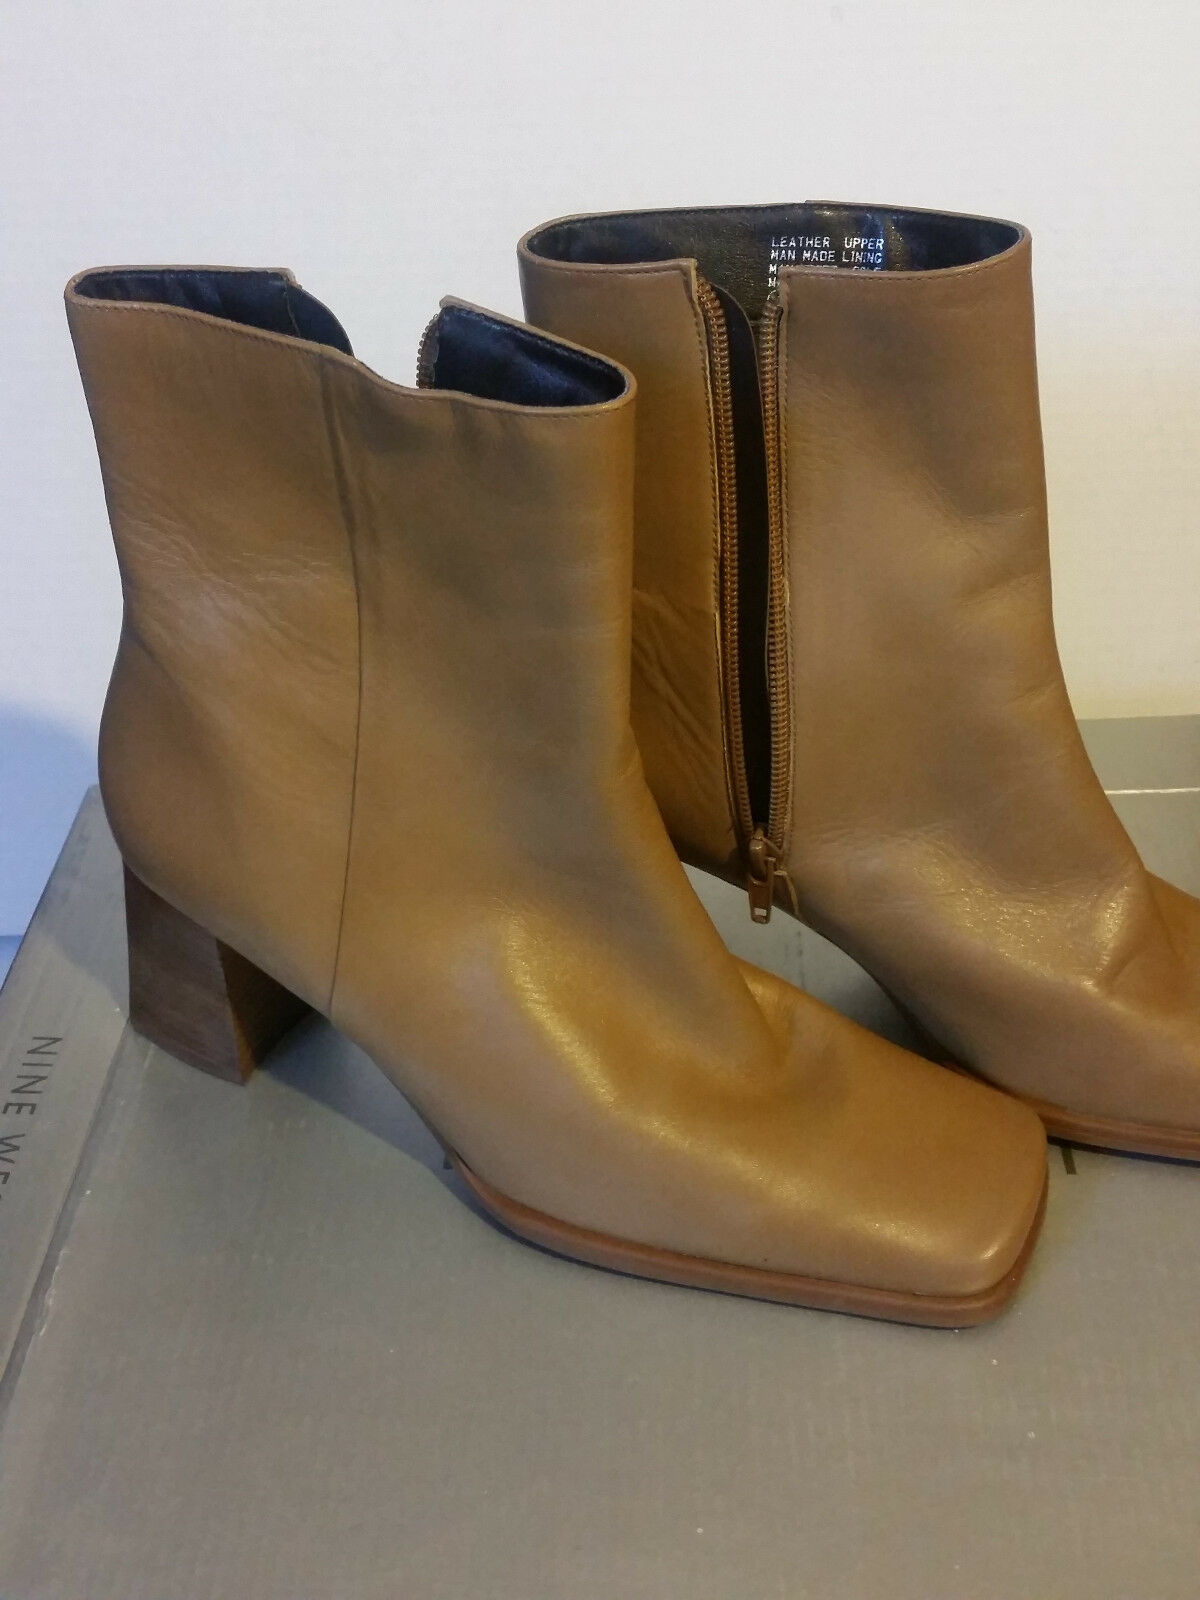 NINE WEST Women's Platform Ankle Boot Leather Tan Size 8M